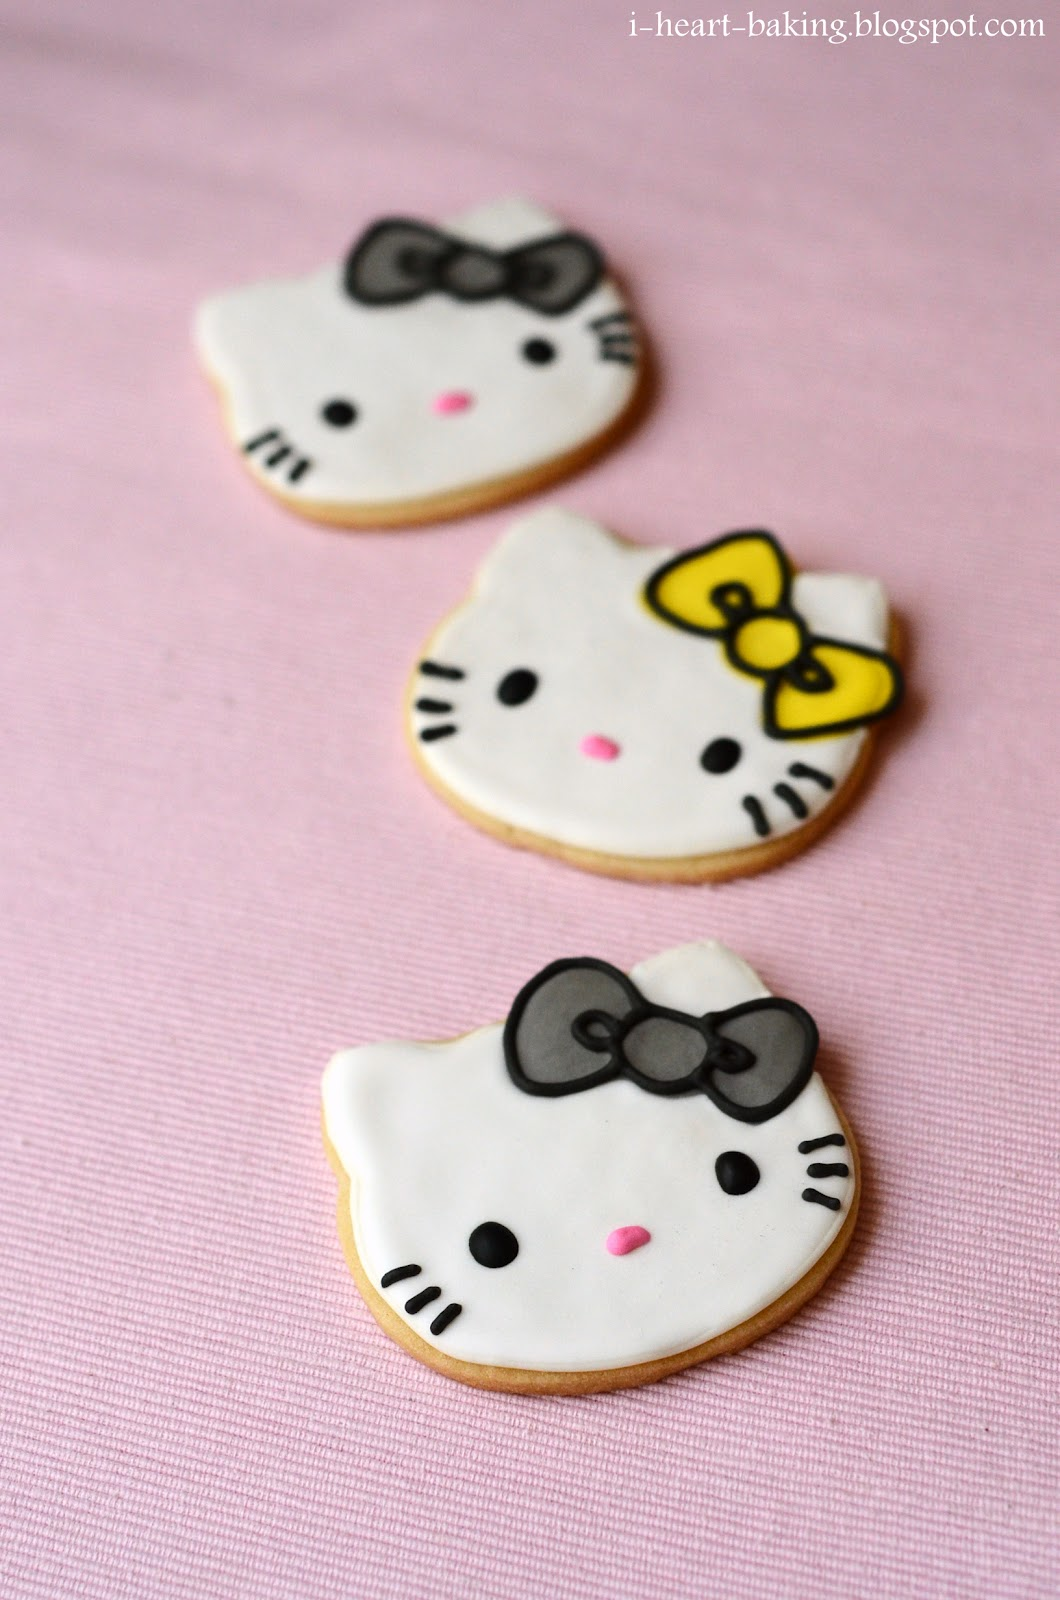 Hello Kitty Tarot Deck: I Heart Baking!: Hello Kitty Cookies